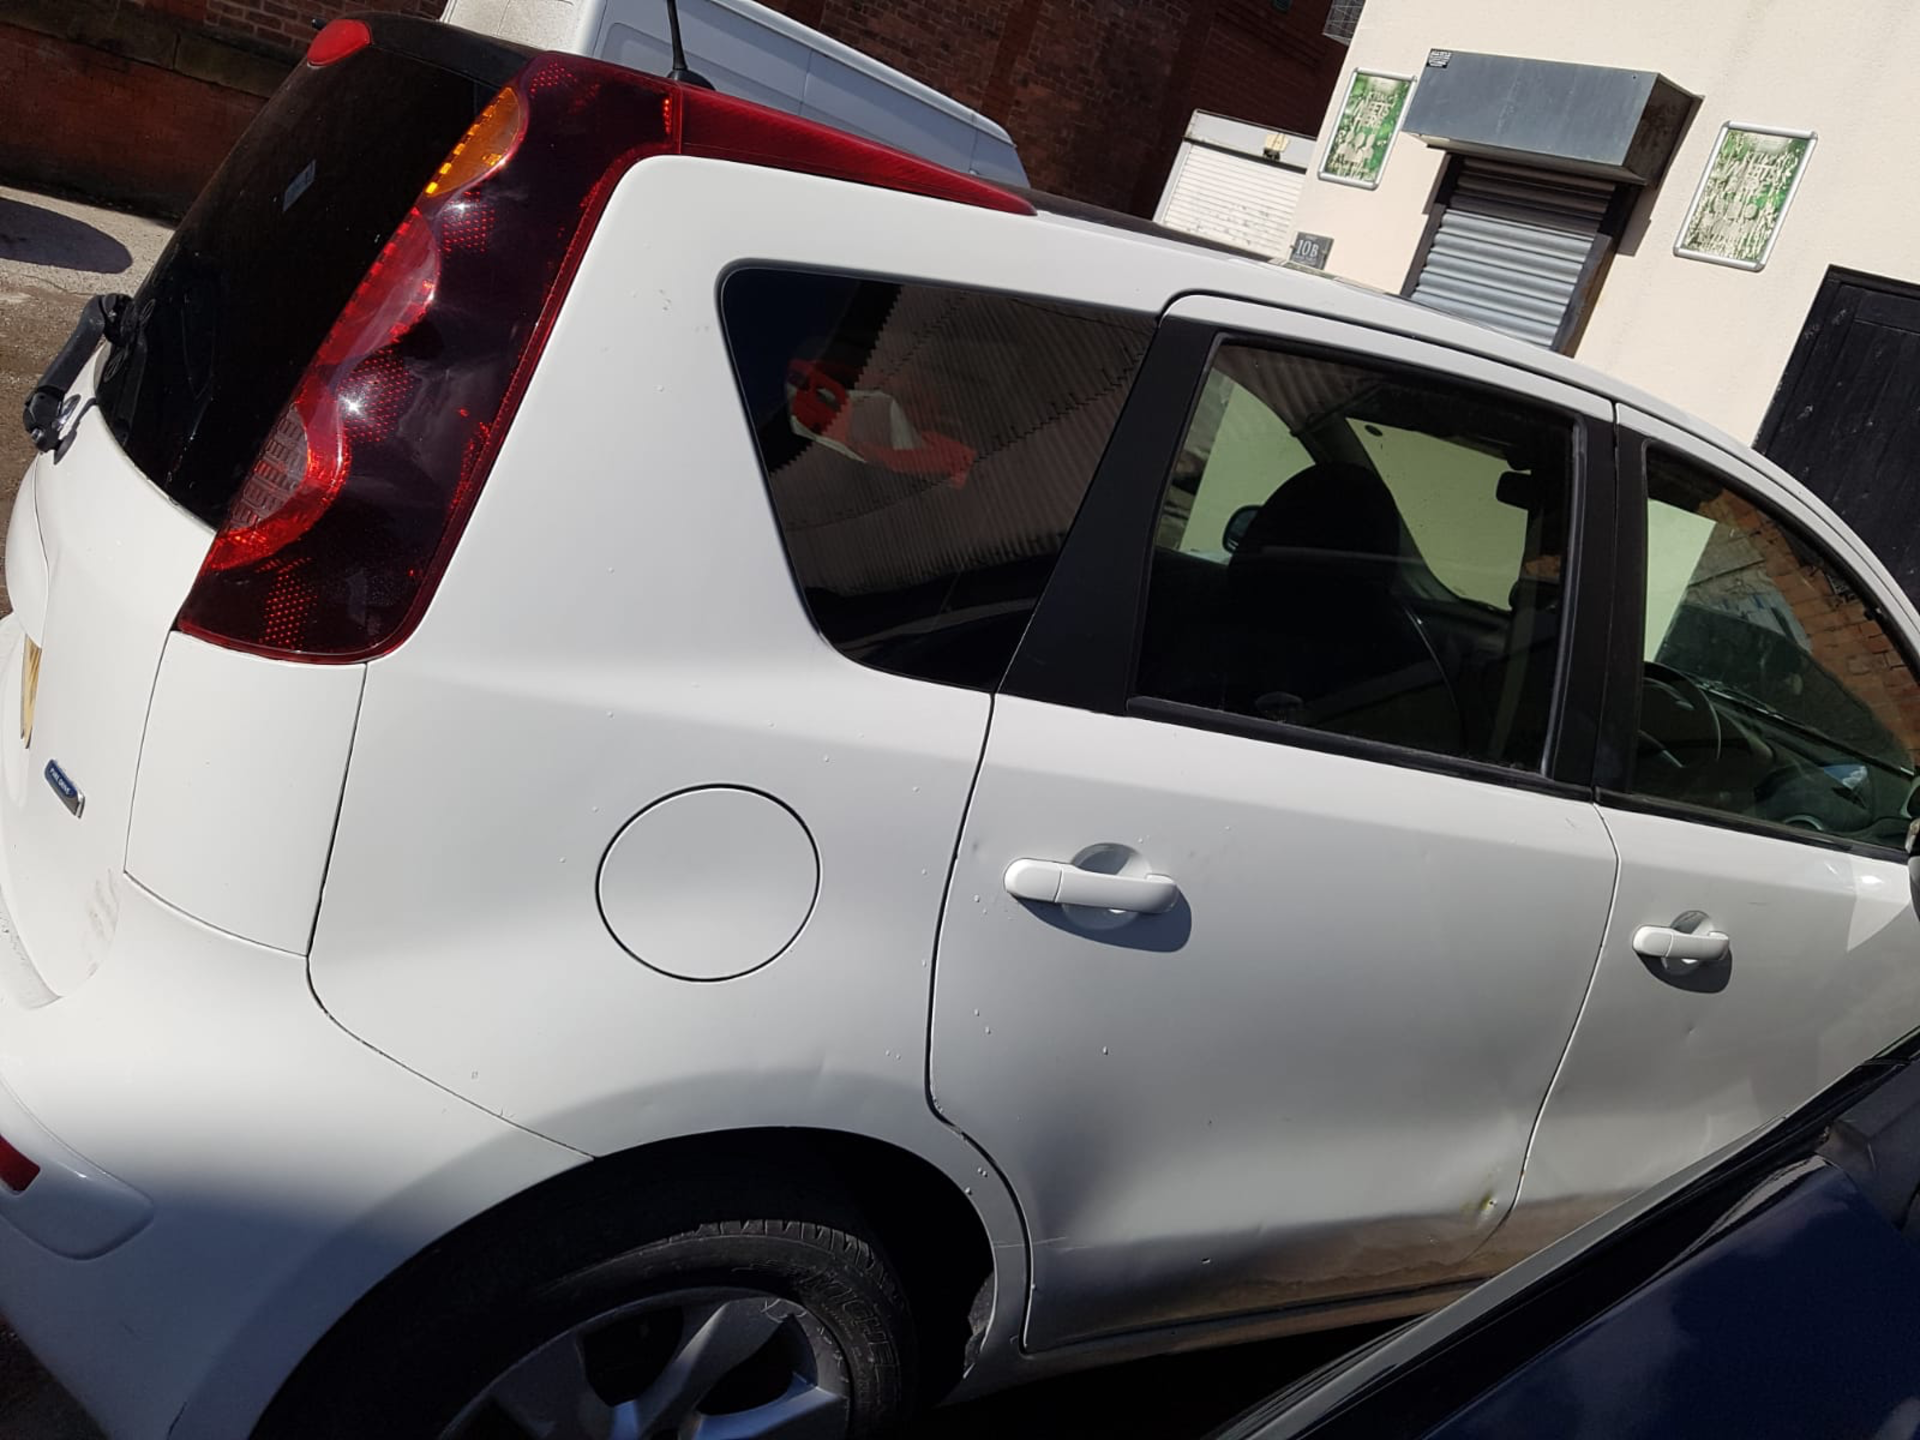 WHITE NISSAN NOTE 2010 GU10 BVL 61000 MILES COLLECTION MANCHESTER - Image 2 of 4